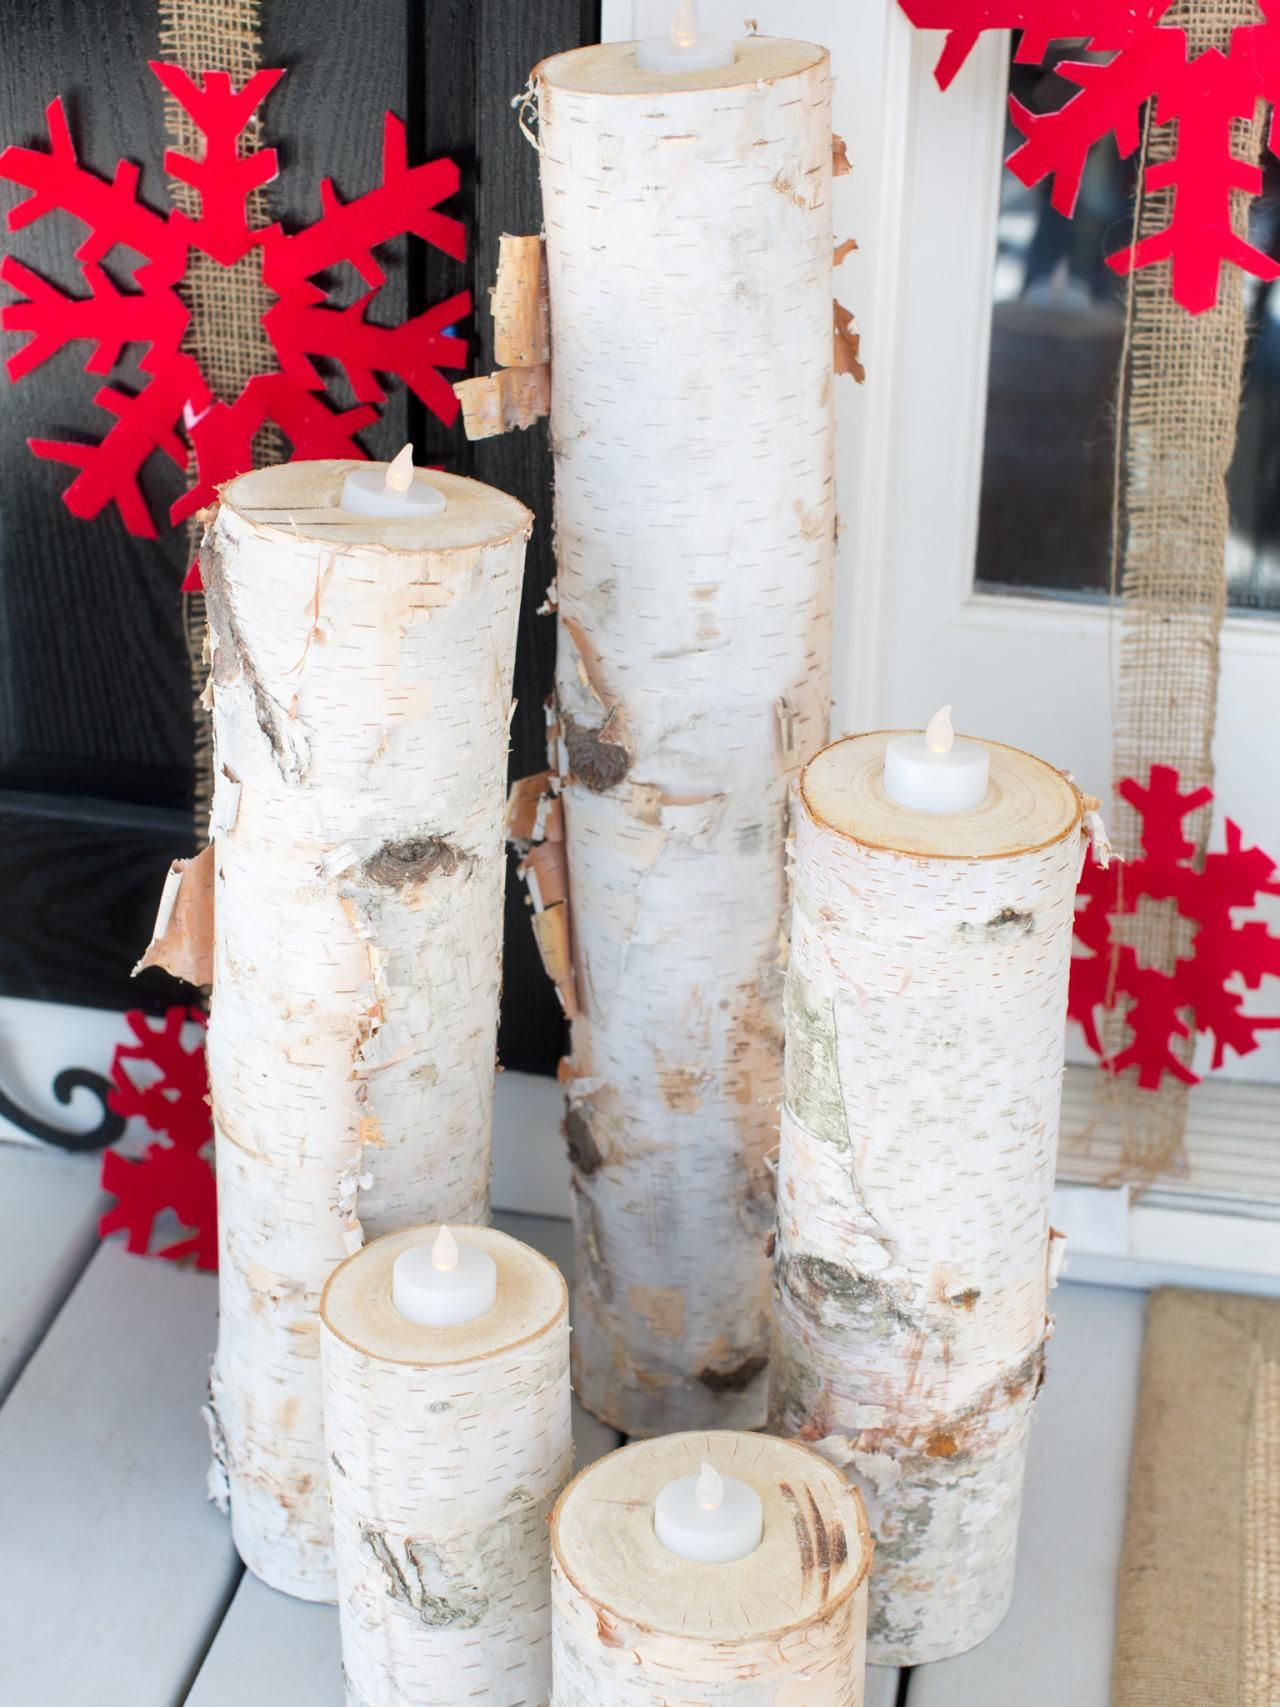 Outdoor Holiday Decorations | Battery operated, Birch and Holidays